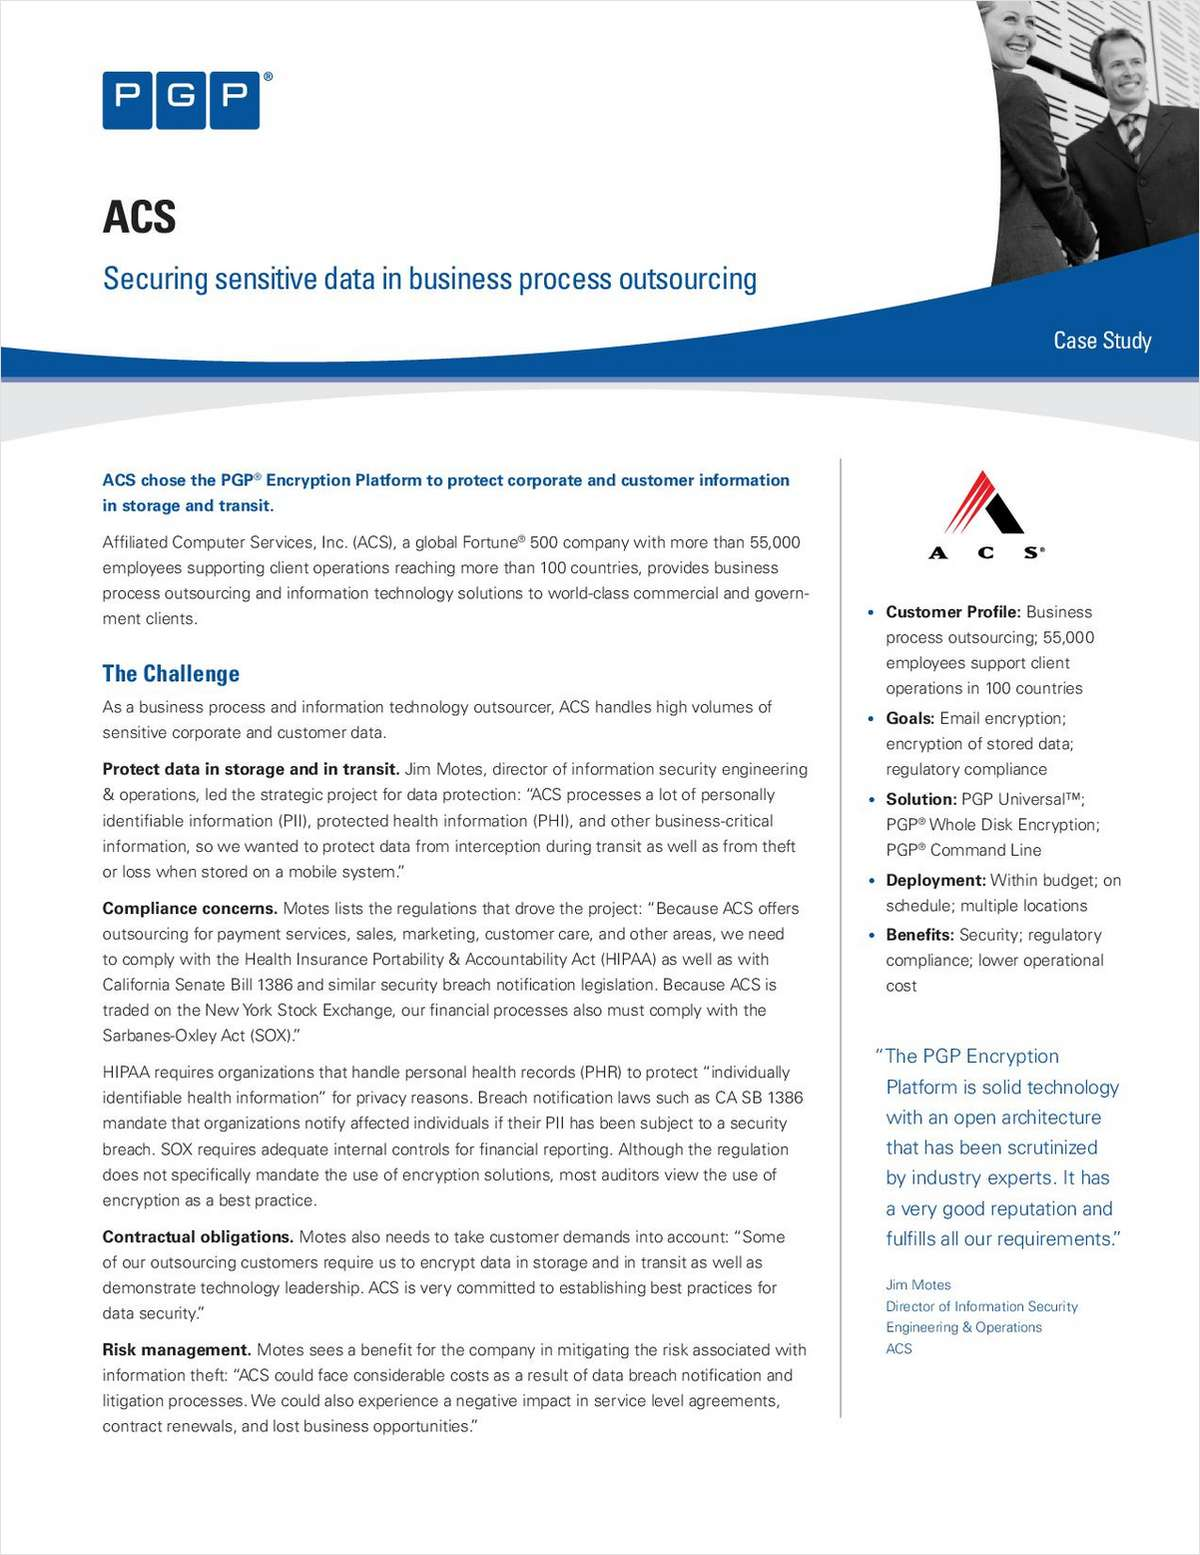 ACS: Securing Sensitive Data in Business Process Outsourcing